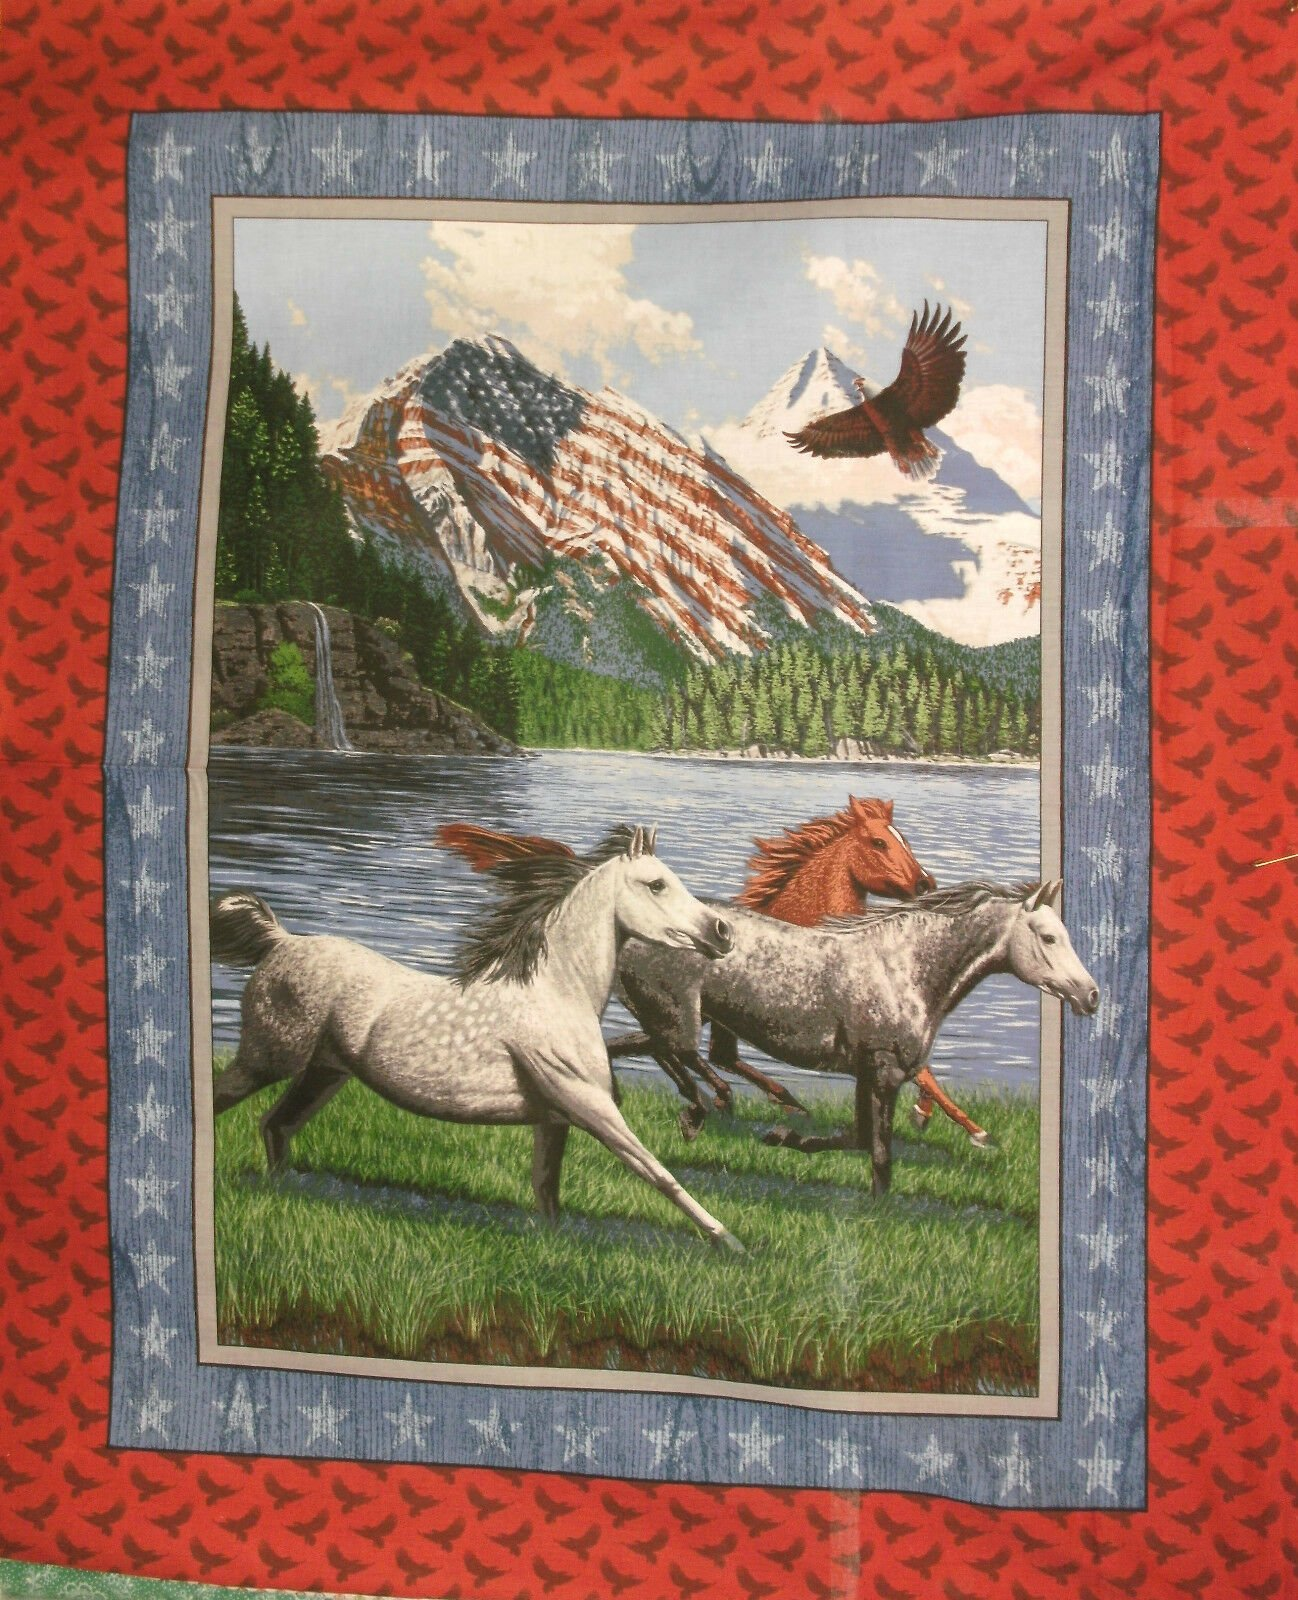 Patriot's Point Wallhanging Quilt Panel - Flag and Horses - by Concord Prints for MDG